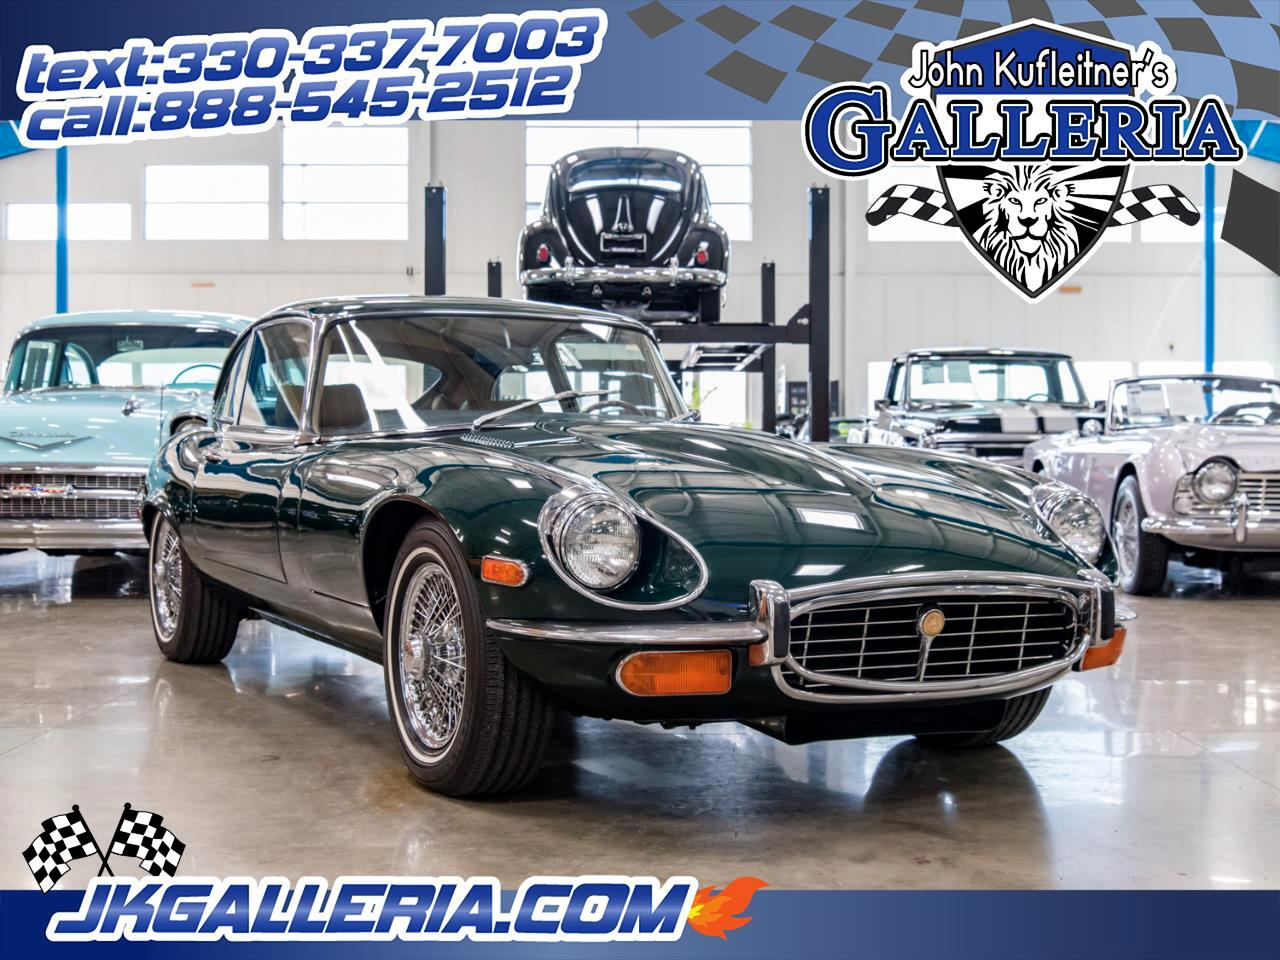 1971 Jaguar E-Type XK-E 2+2 Coupe